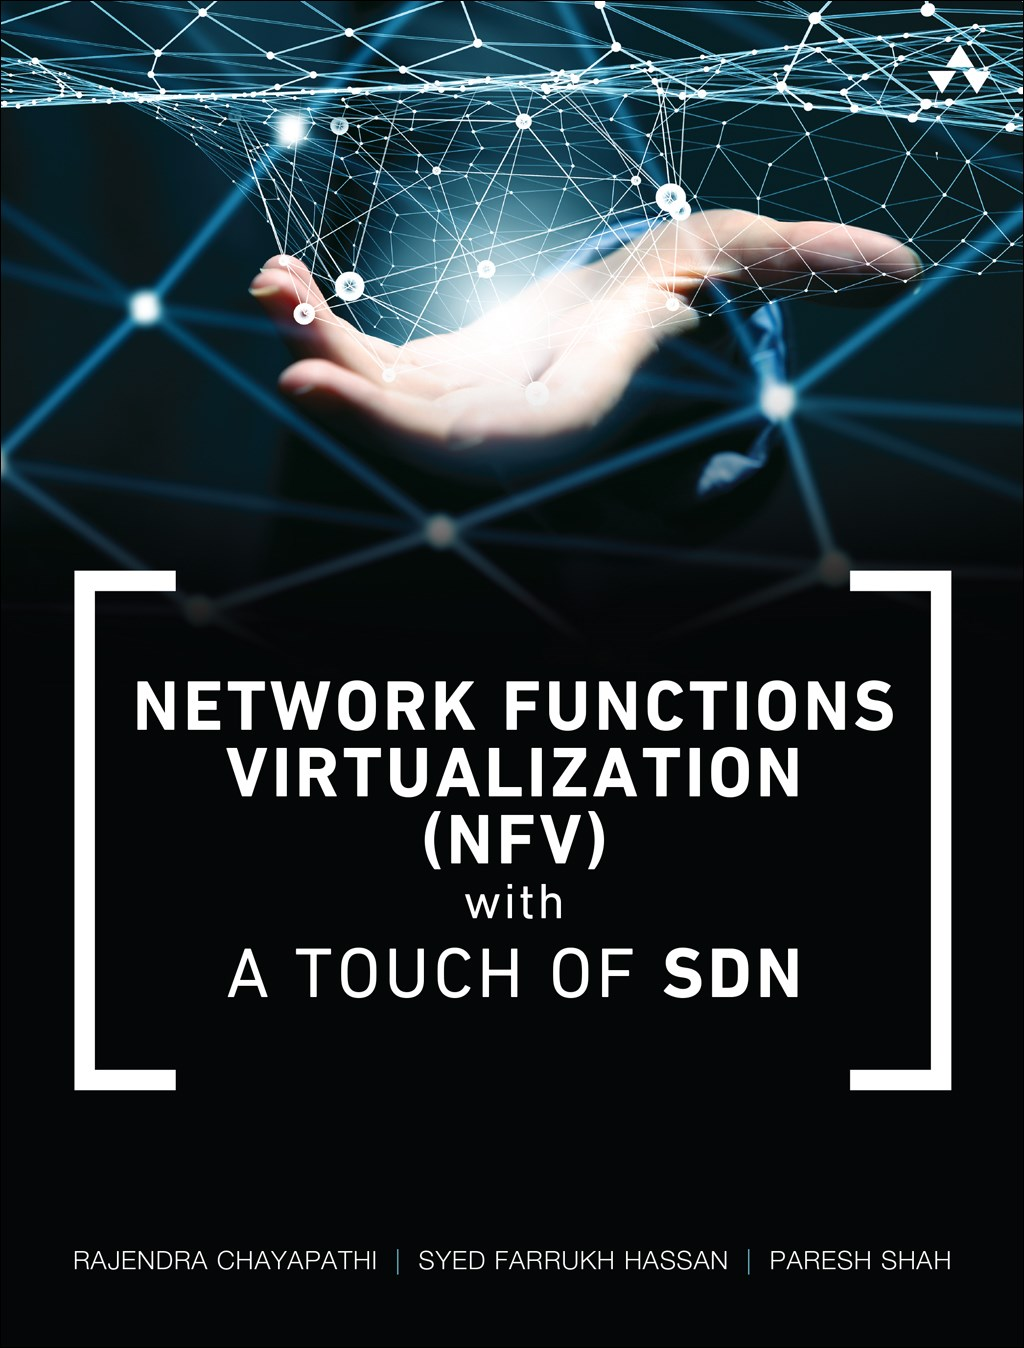 Network Functions Virtualization (NFV) with a Touch of SDN